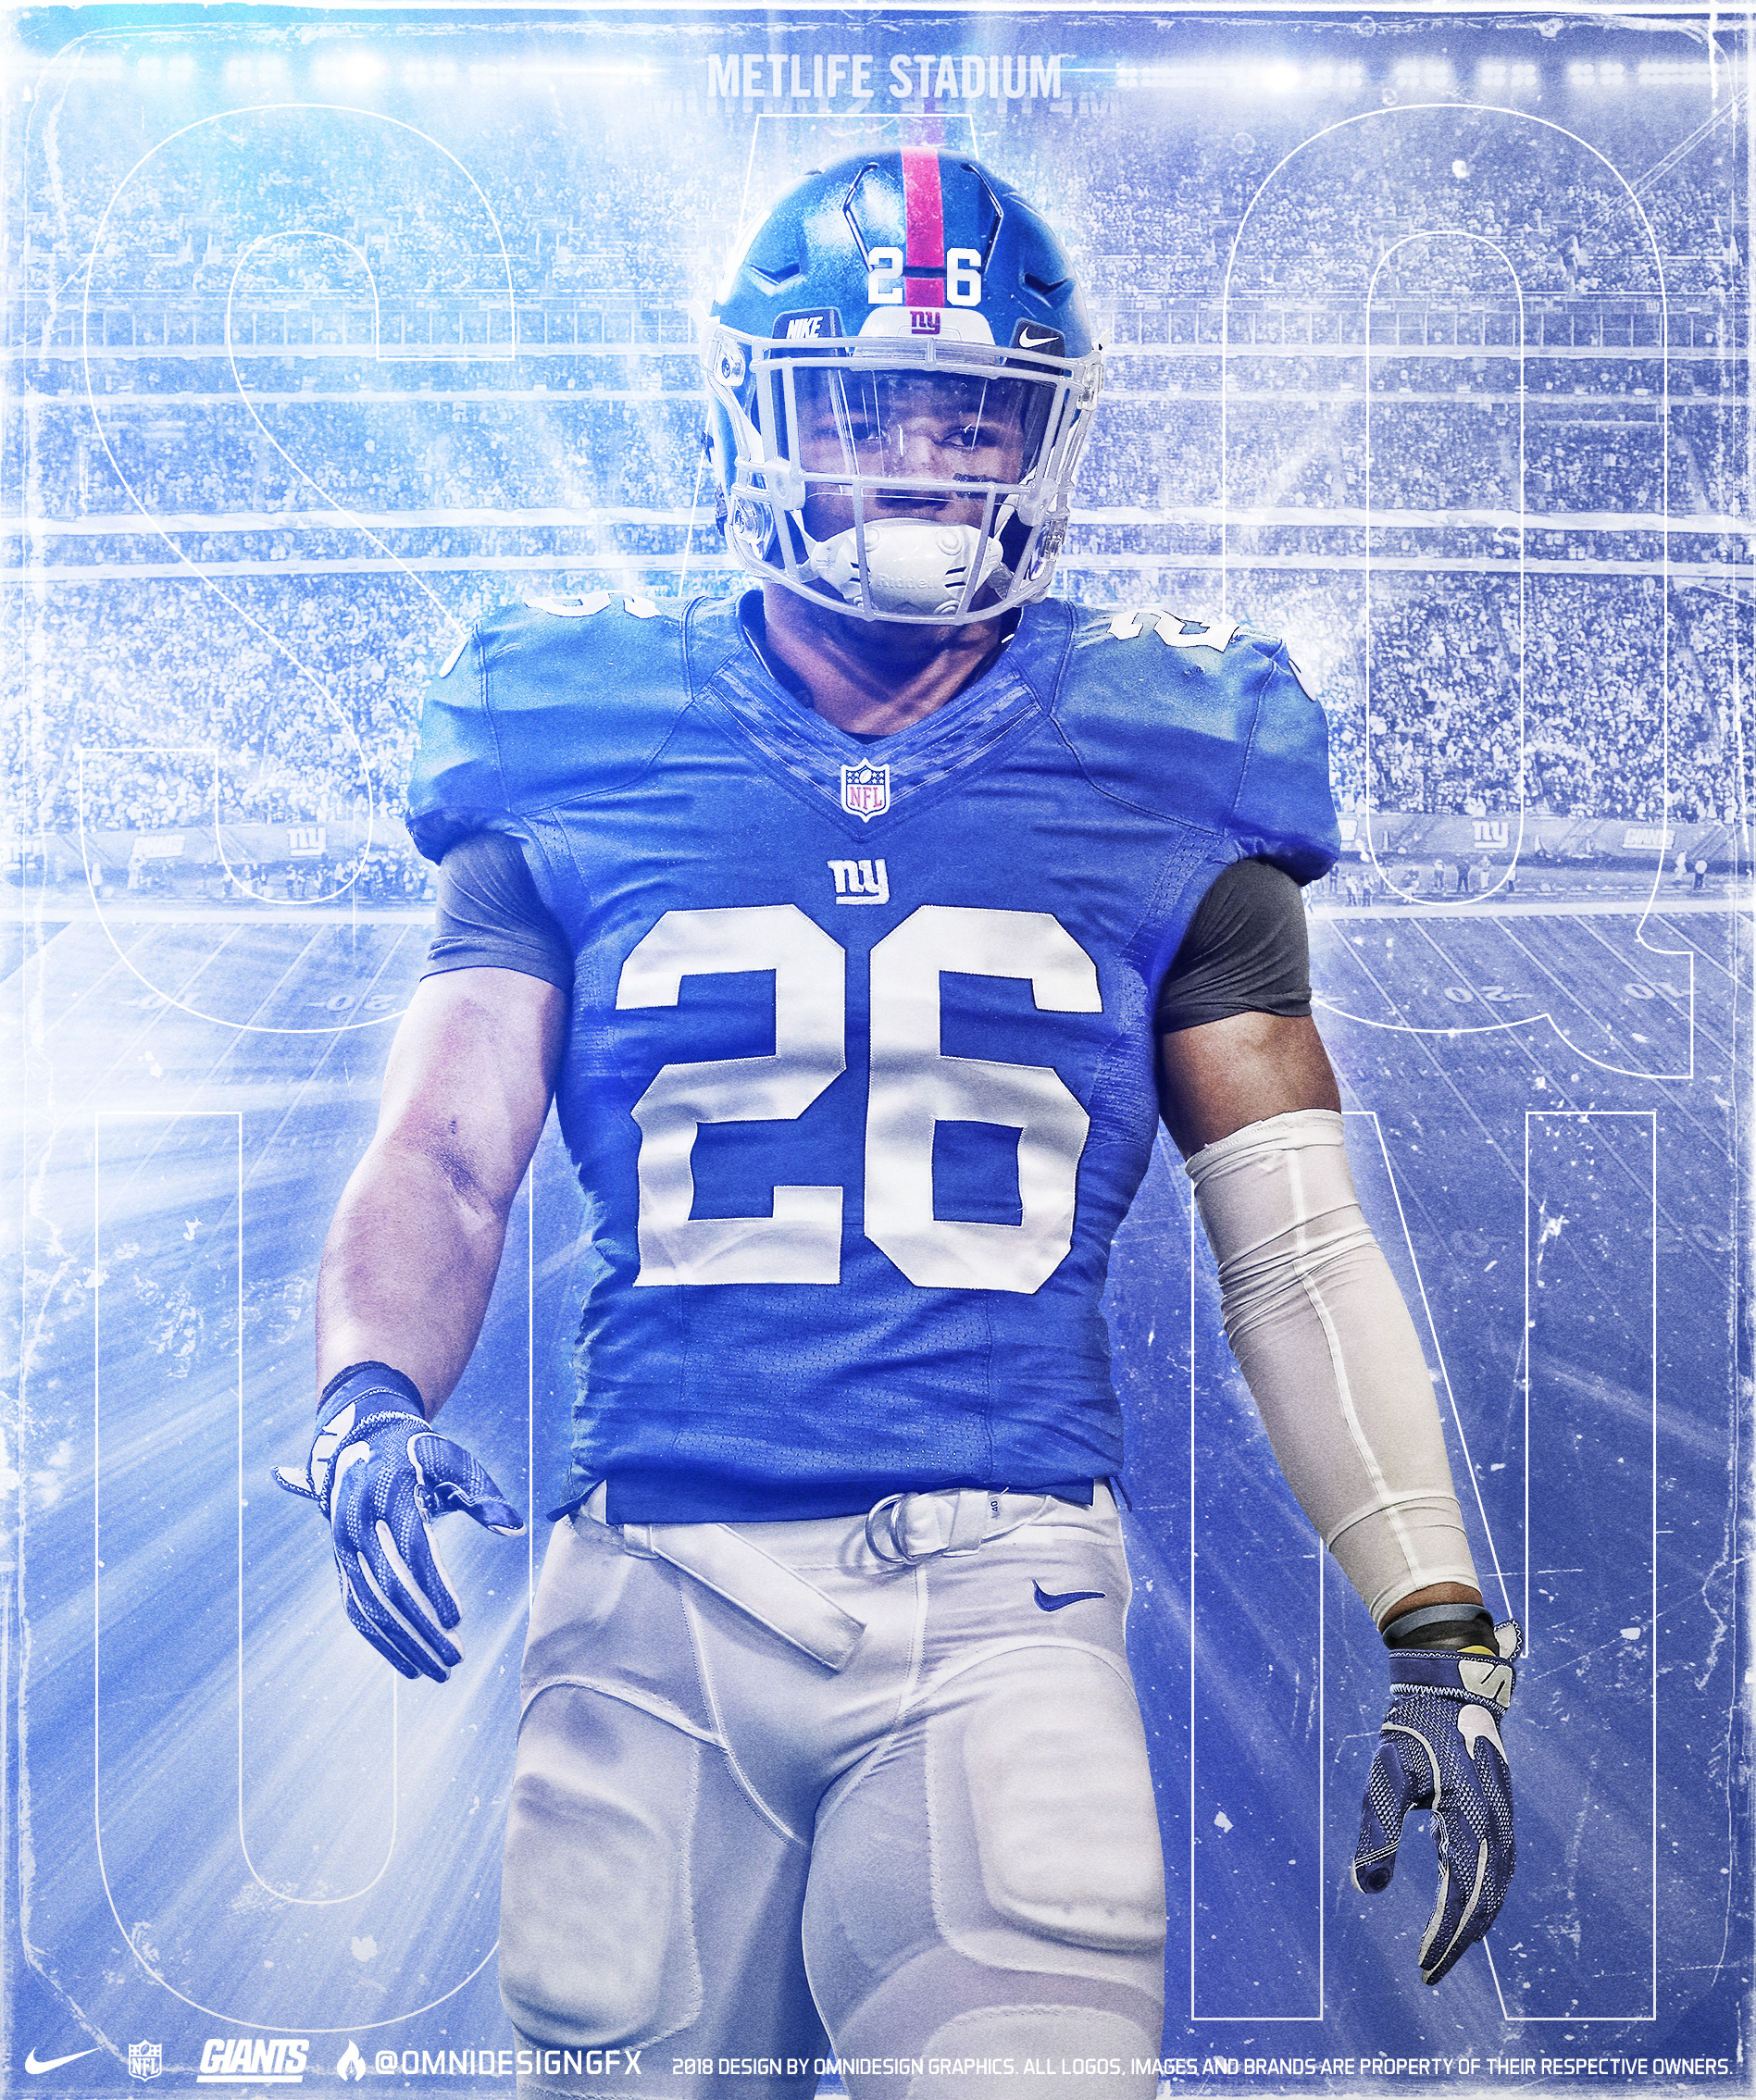 Saquon Barkley New York Giants Wallpapers FREE Pictures on GreePX 1897x2269